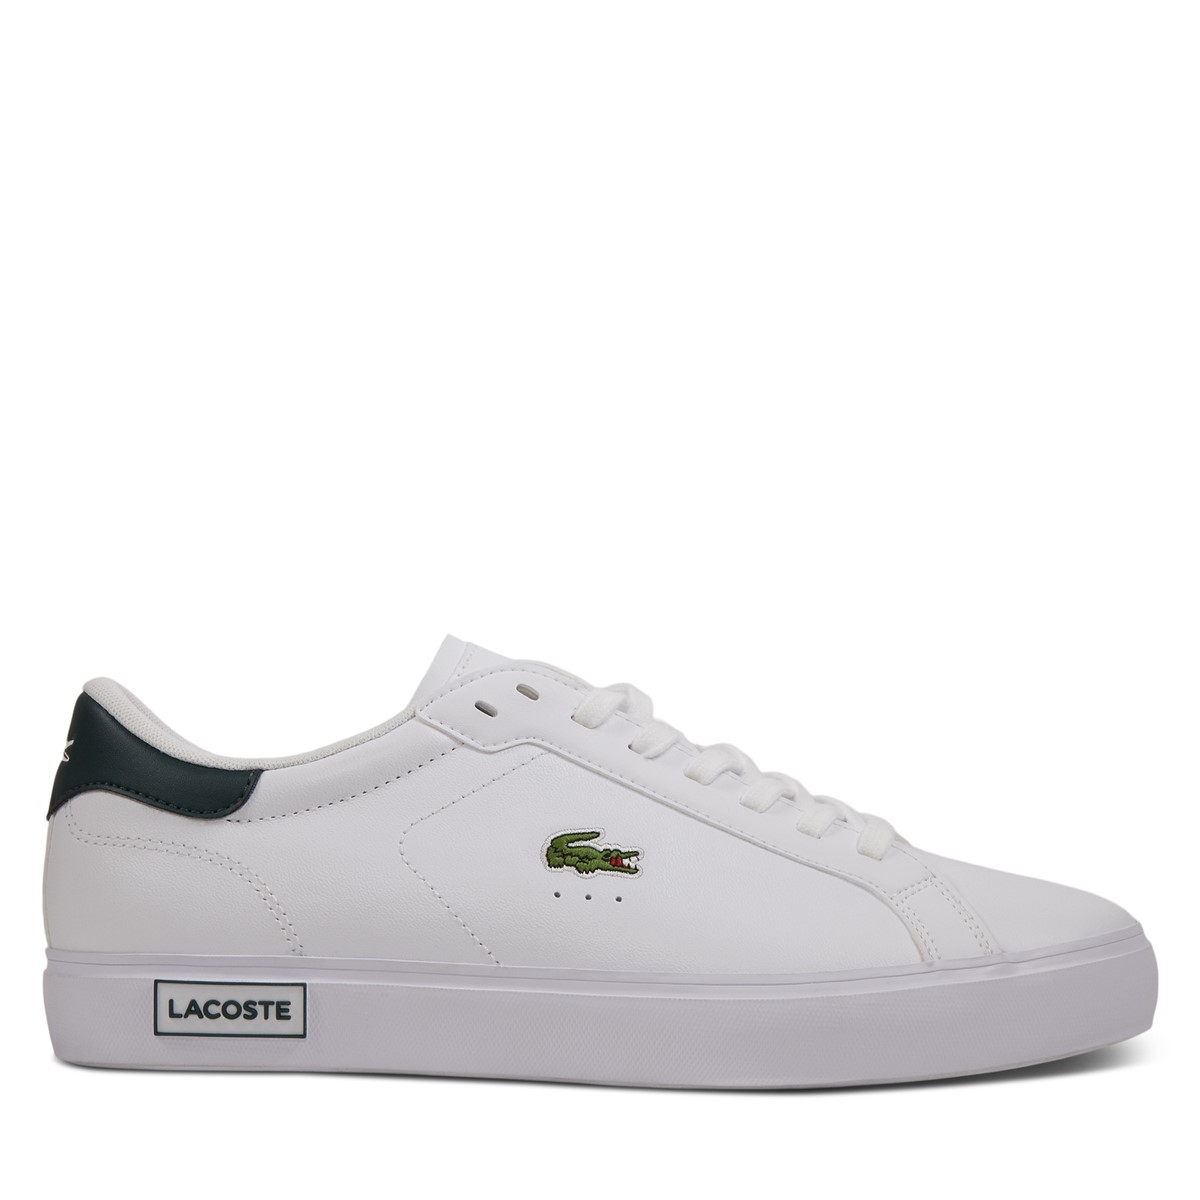 Men's Power Court Sneakers in White/Black